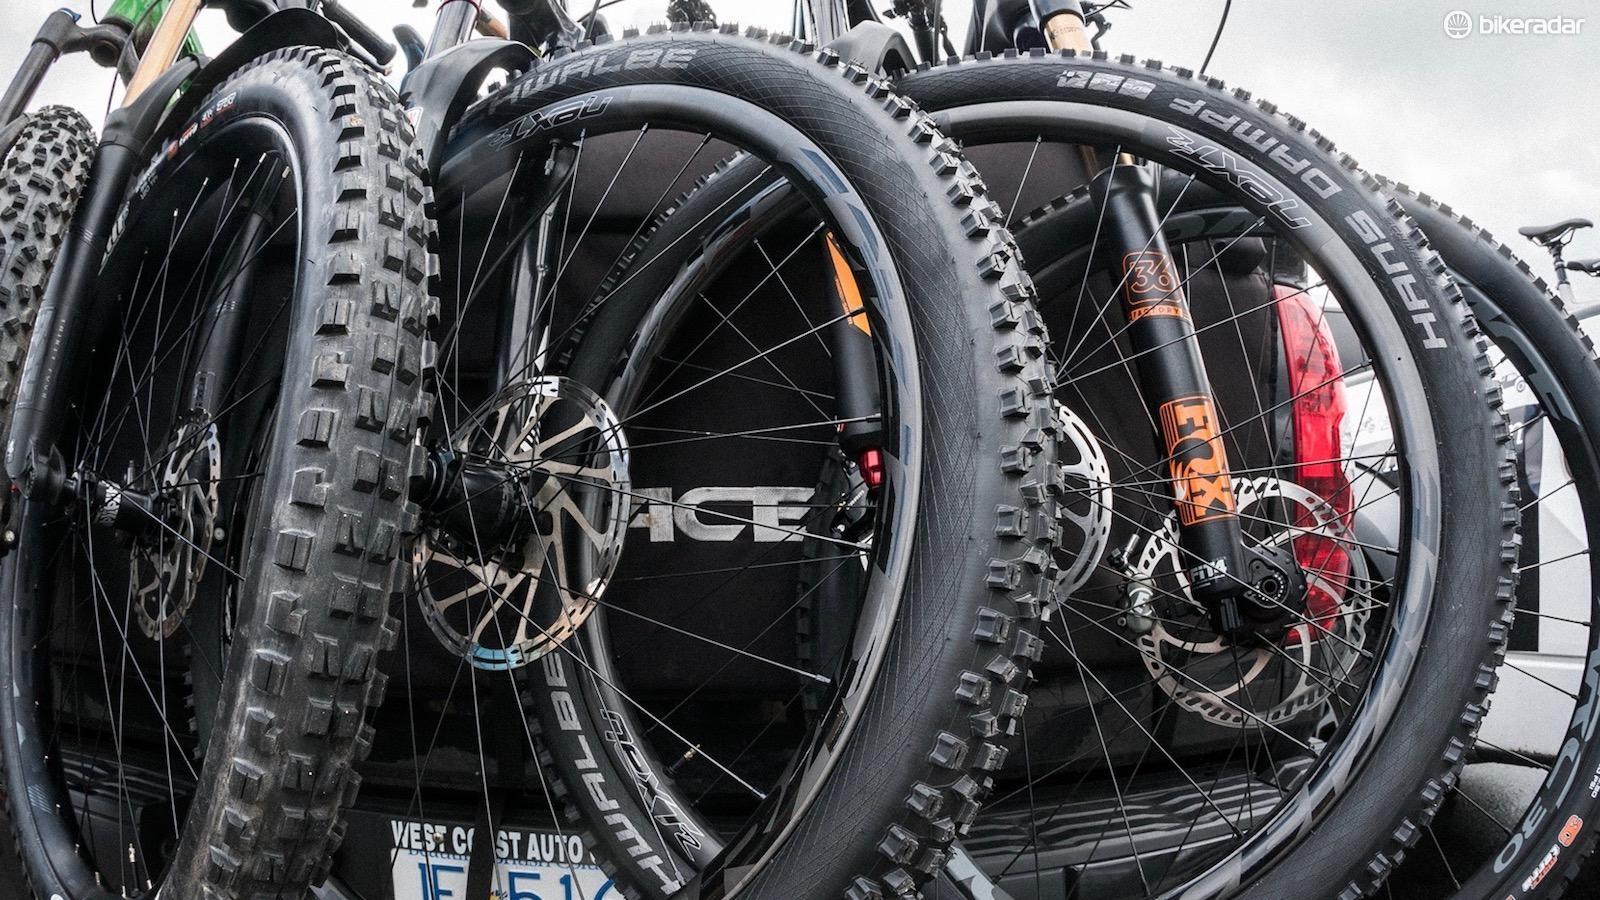 The RaceFace Next R wheels are 31mm internal and designed for trail riding, complementing 2.3-2.6in tires